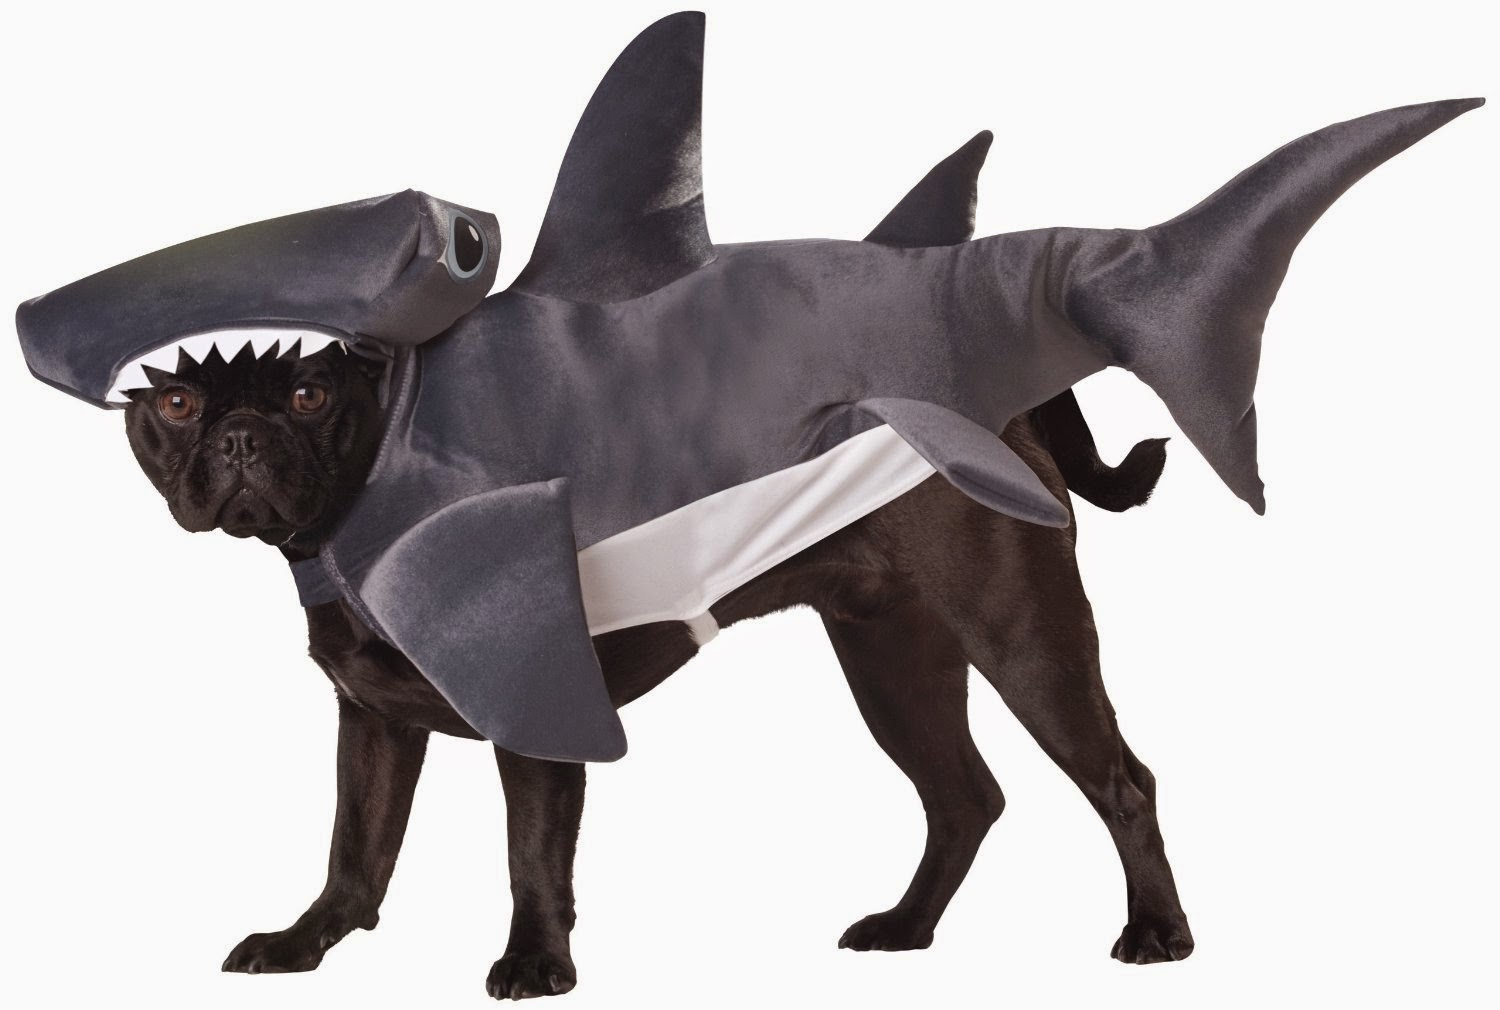 Animal Planet shark costume for dogs with broad skulls